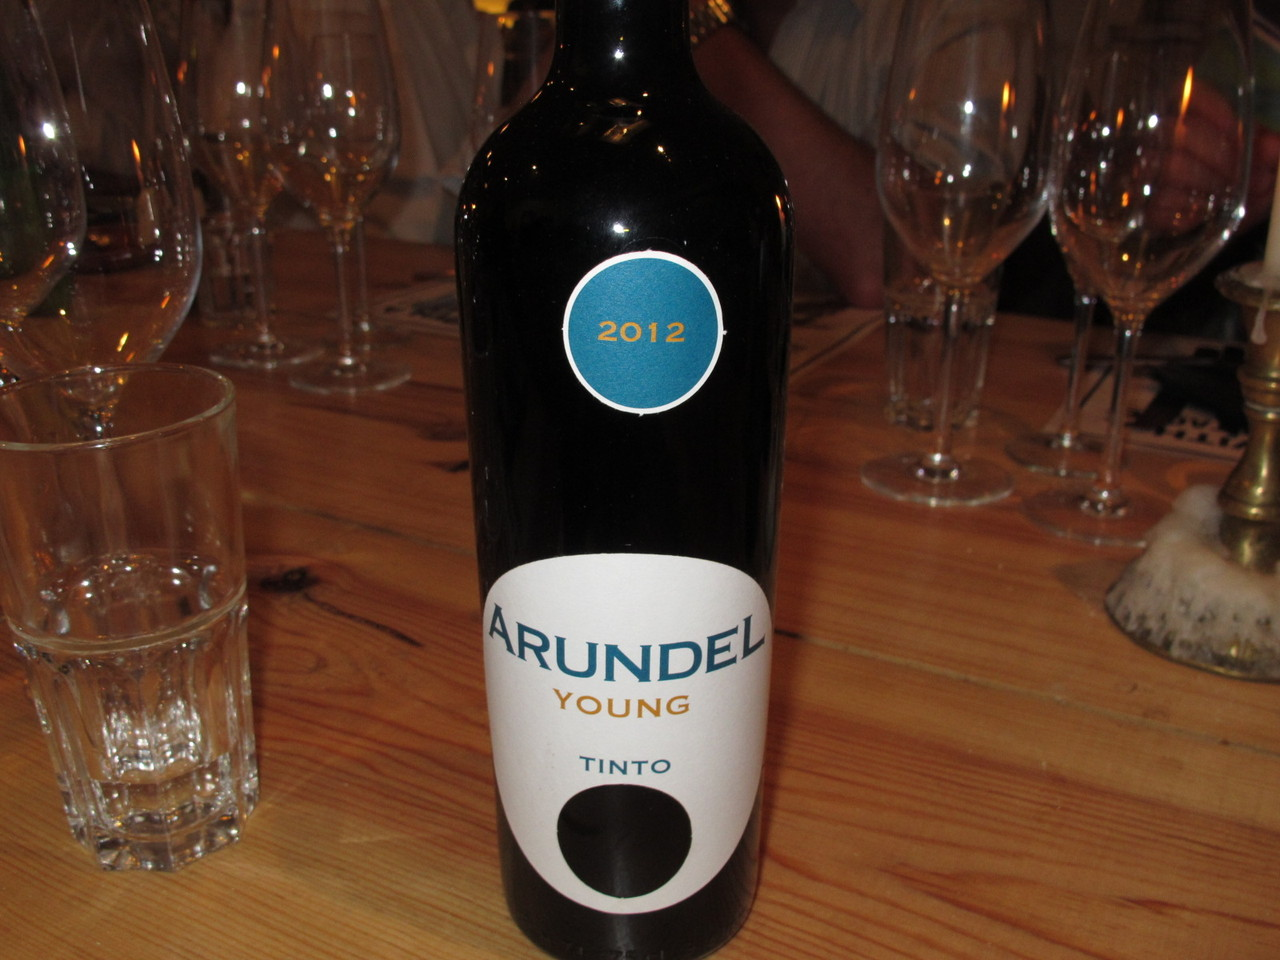 Arundel Young Tinto 2012